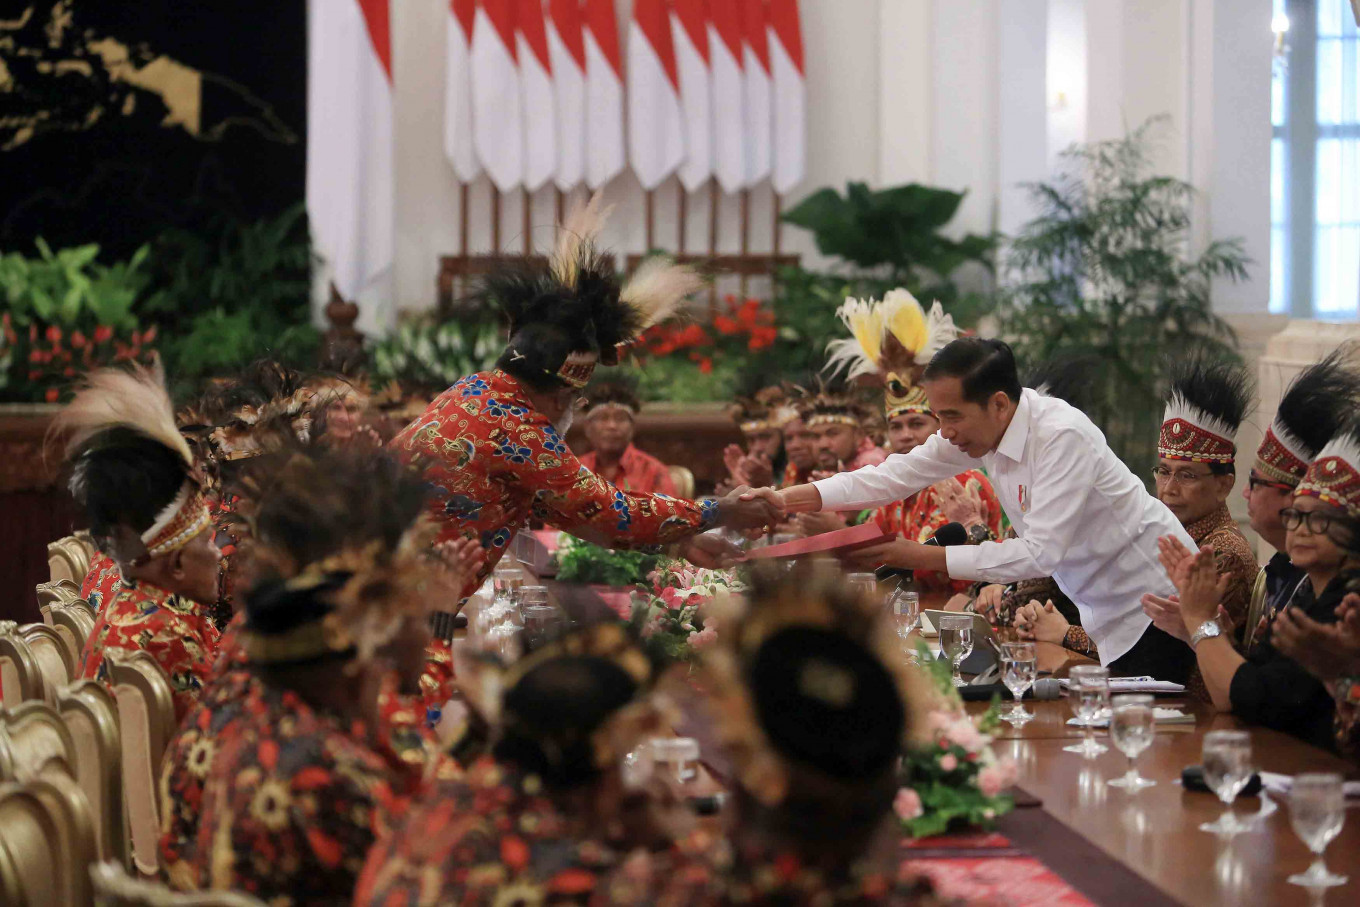 Jokowi's meeting with Papuan delegation 'misses the point'